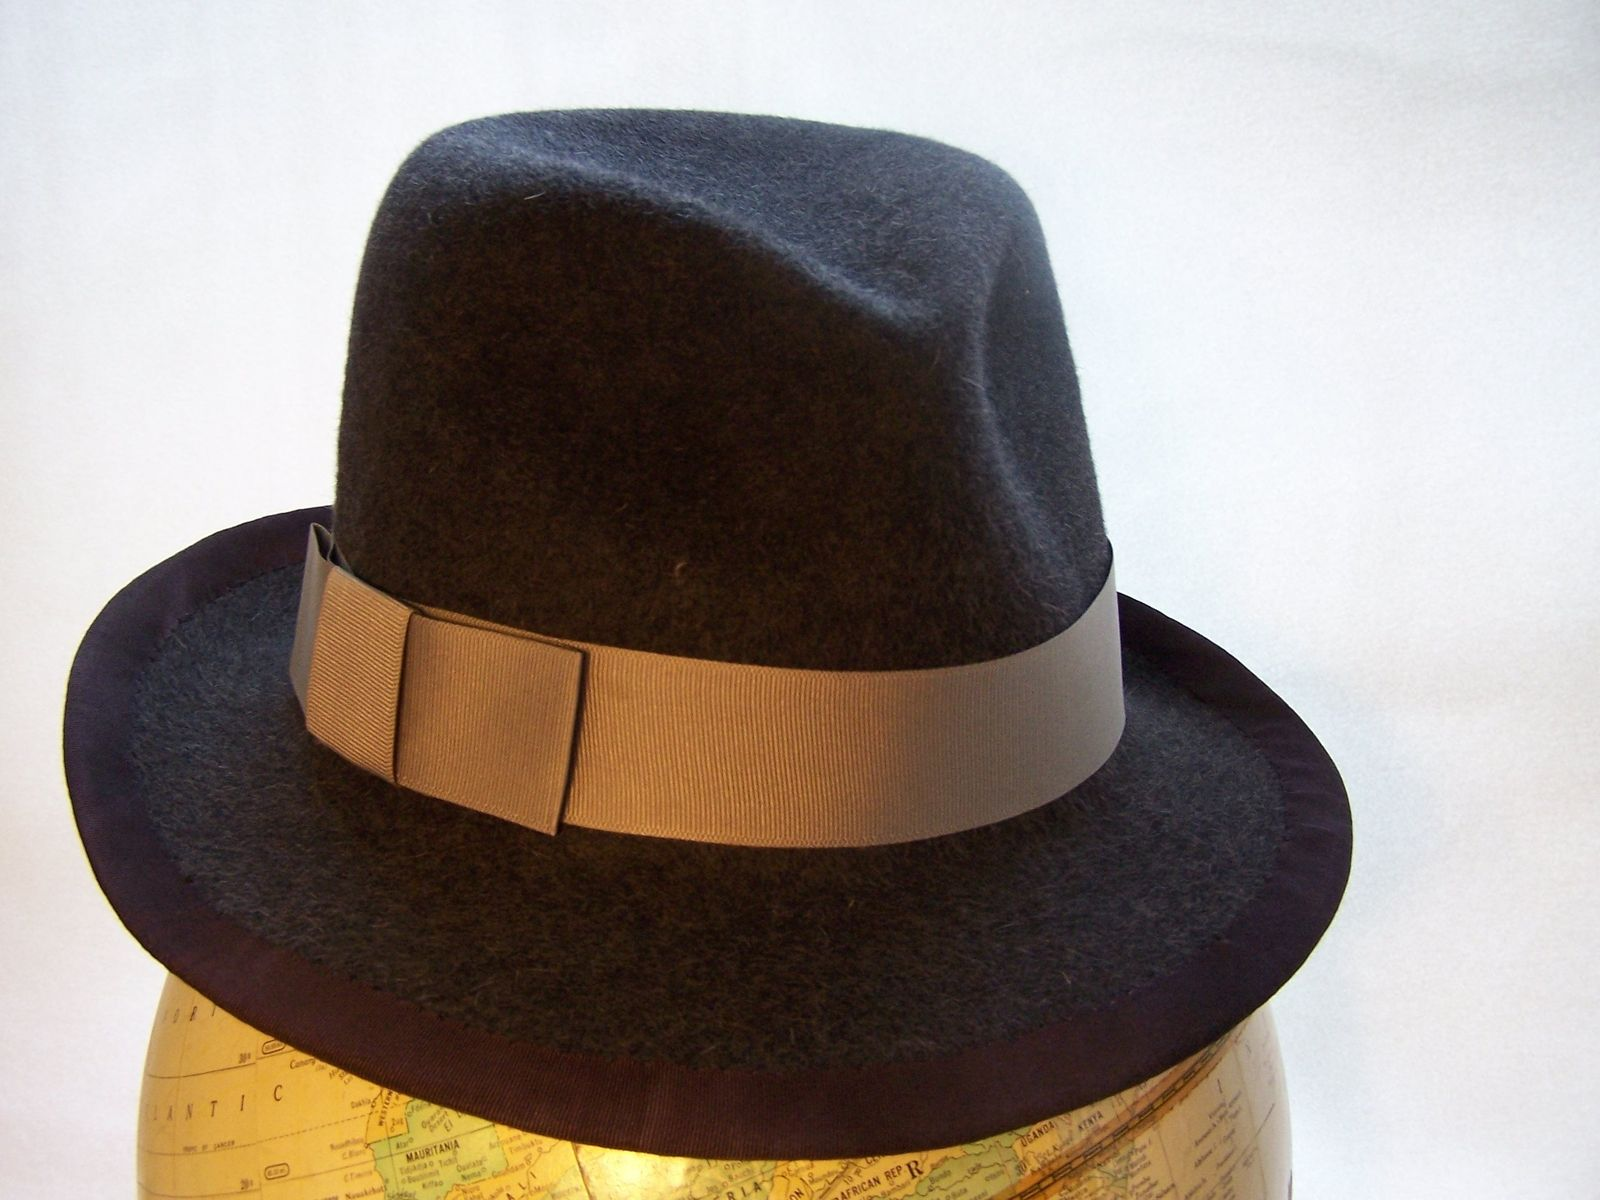 00558a5b50a1f Handmade Men s Trilby Fedora by Mixed Media by Bridget